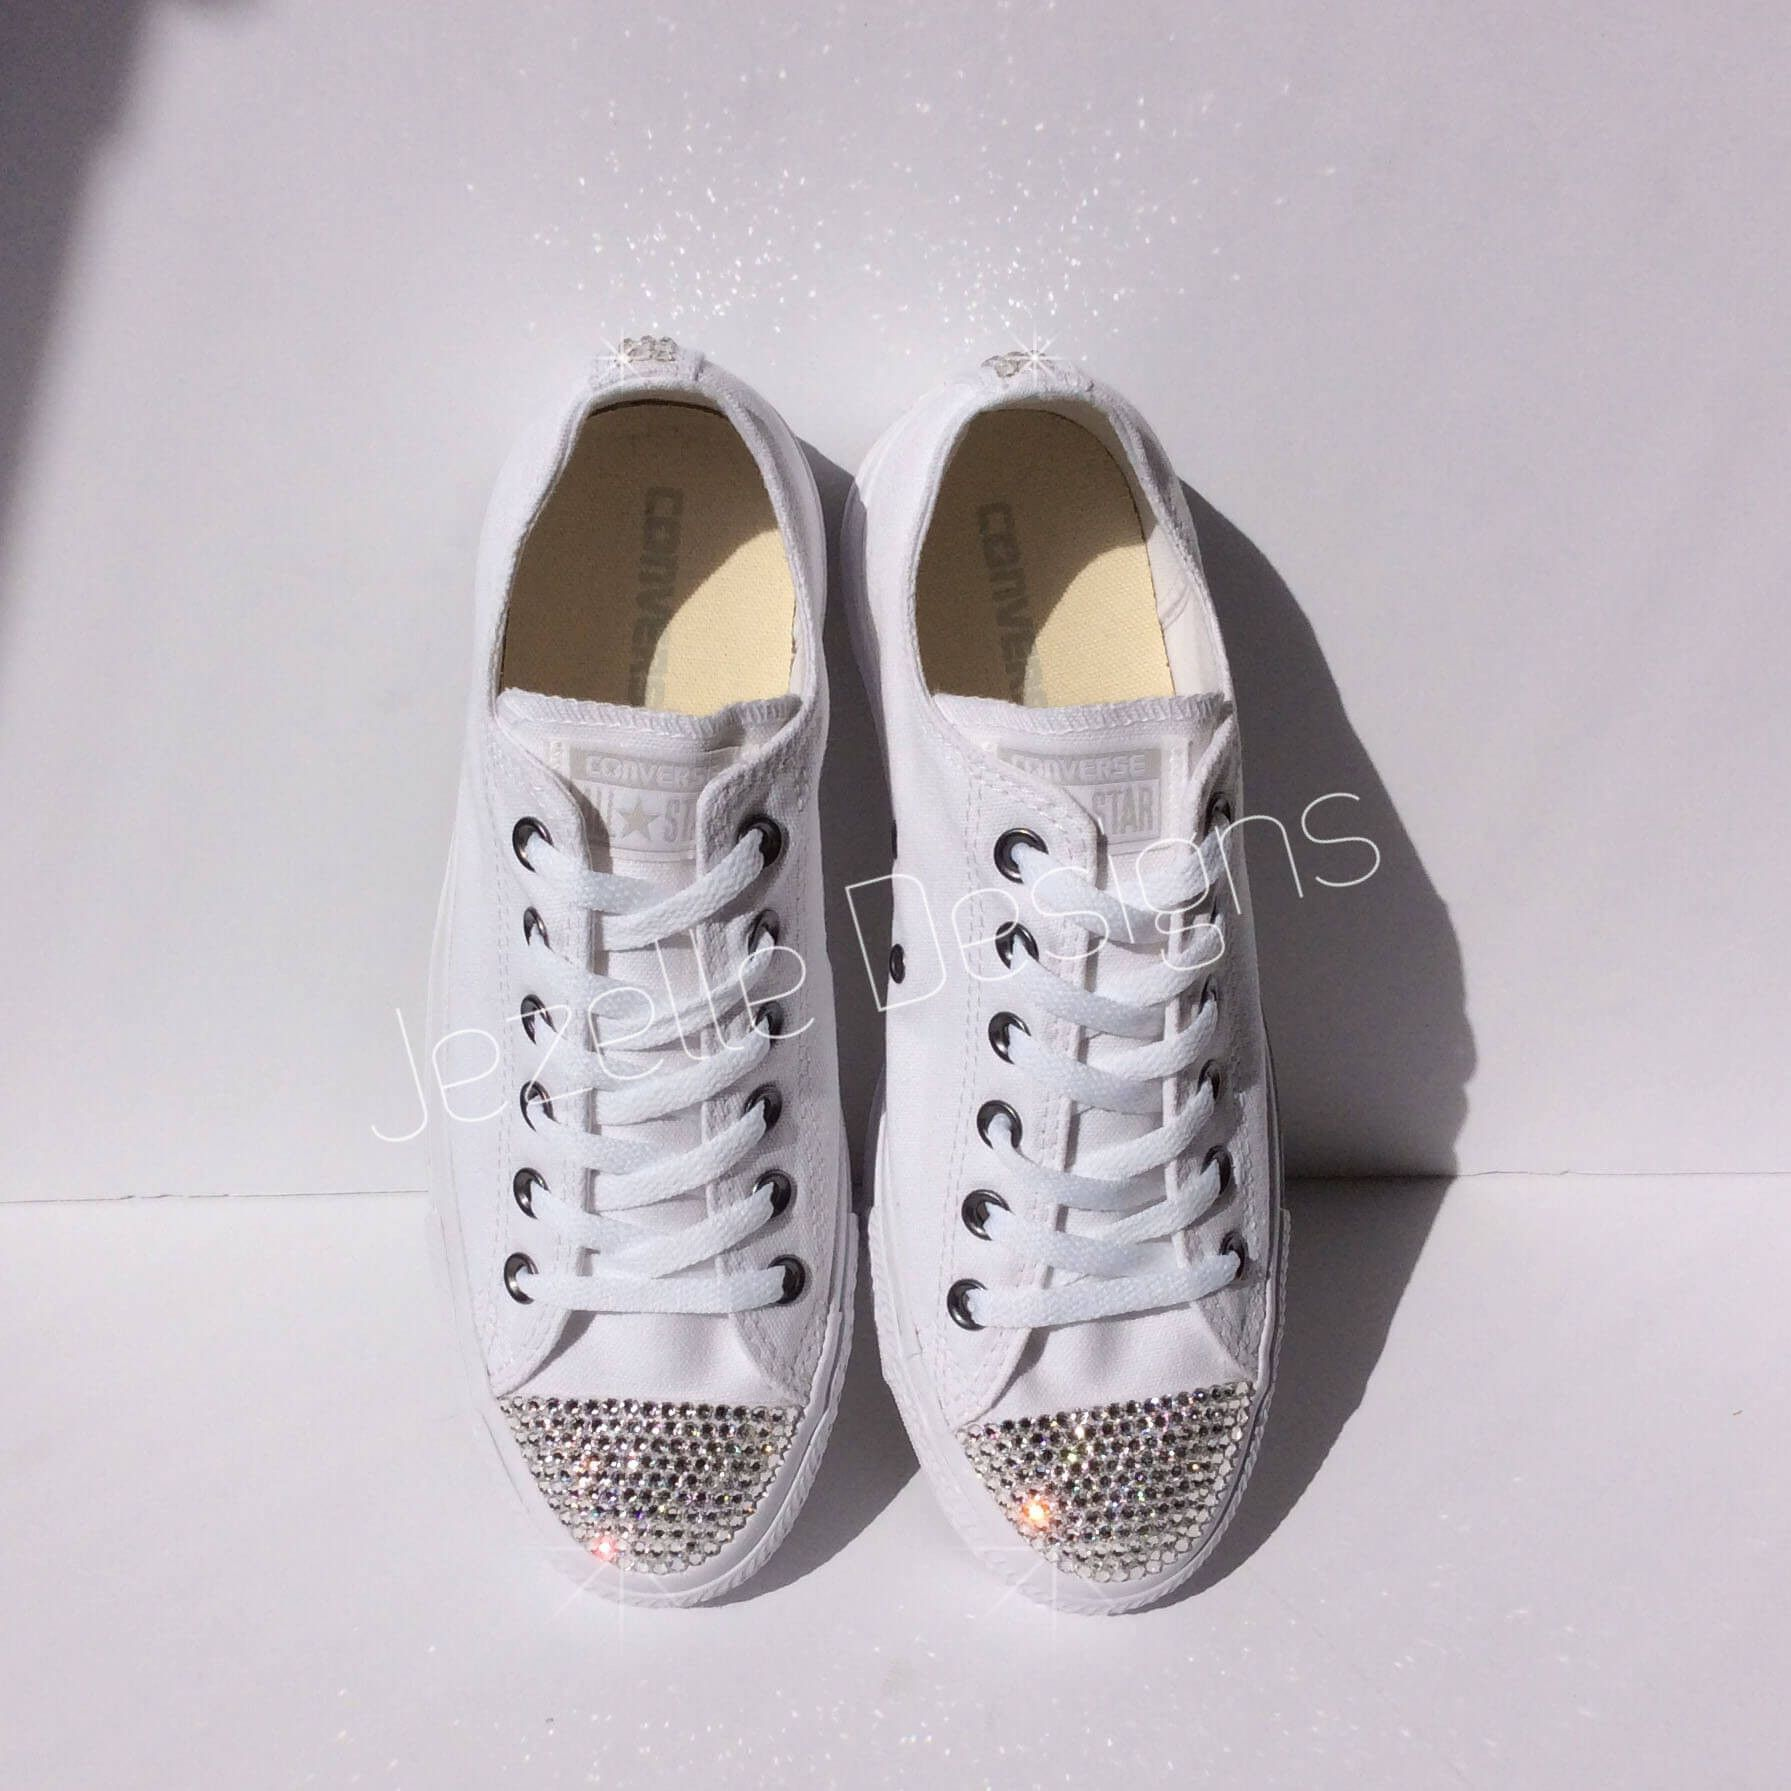 Womens ALL White Bedazzled Converse  Glitter Converse Shoes With Genuine  Swarovski Crystals 84dcde92fbd7